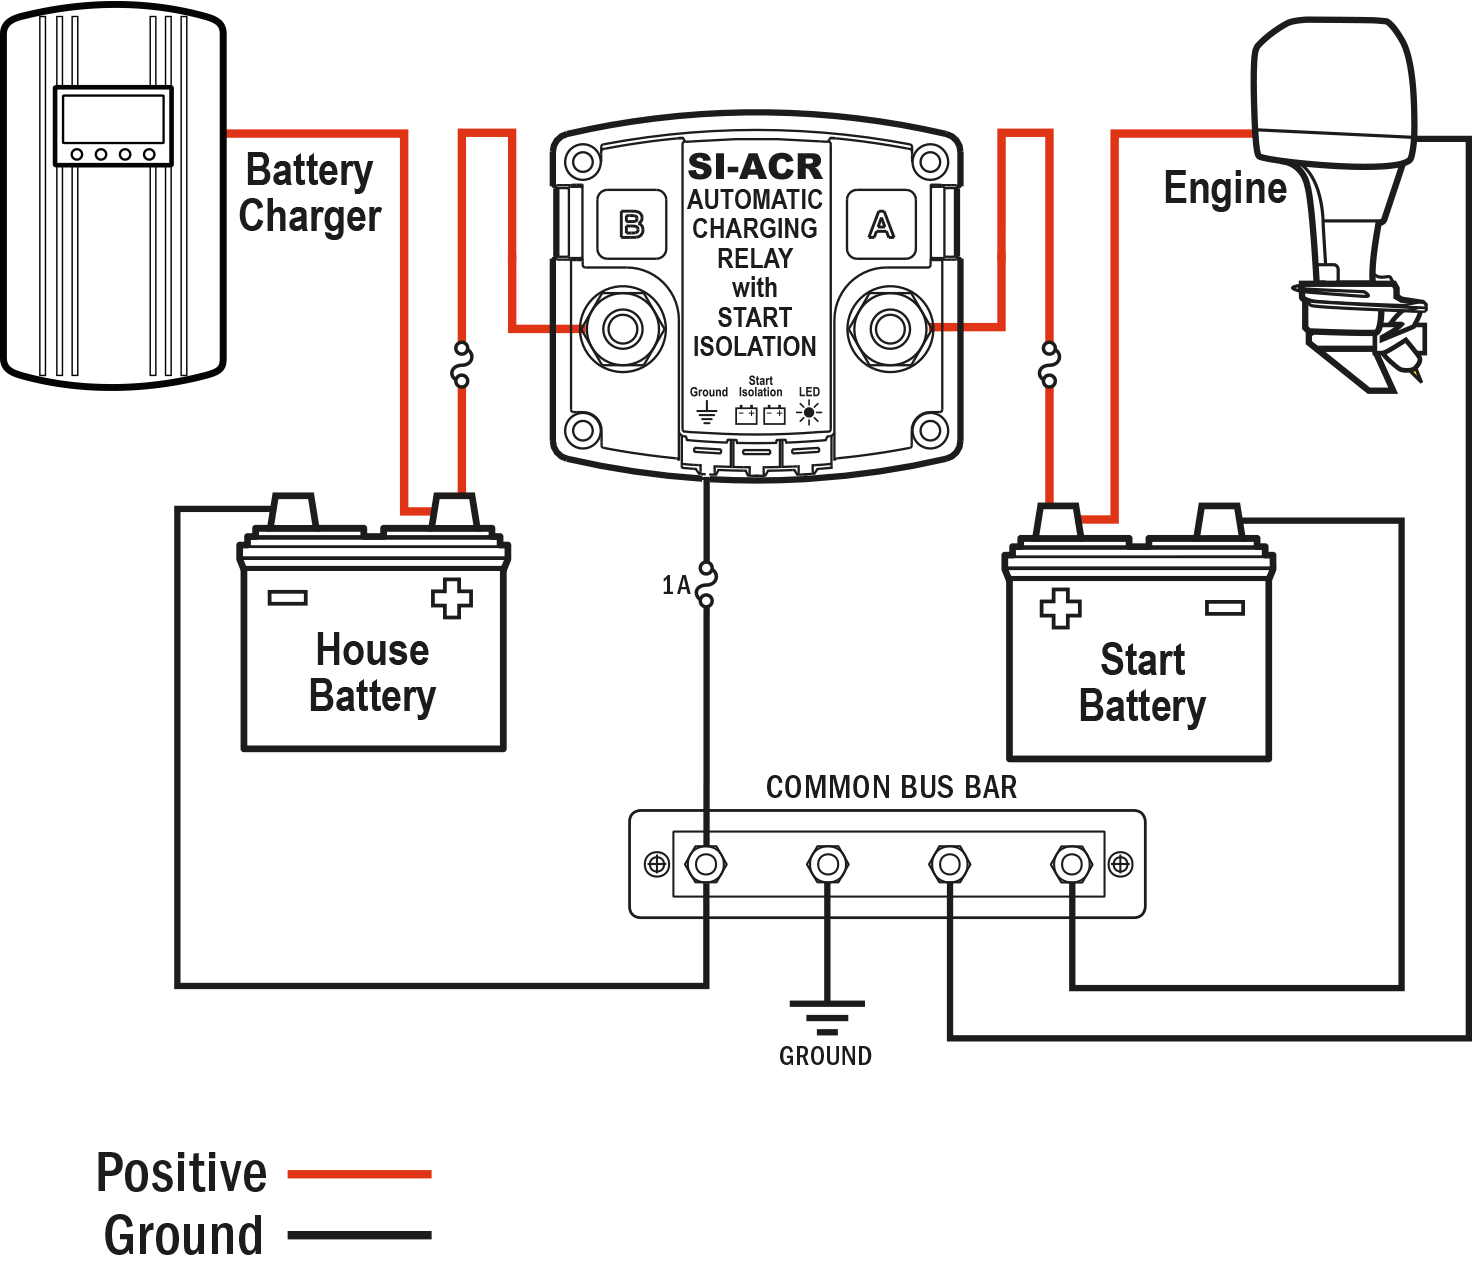 cole hersee relay wiring diagram wiring diagram automotivecole hersee relay wiring diagram schematic diagrammarine battery isolator wiring diagram wiring diagram cole hersee cross